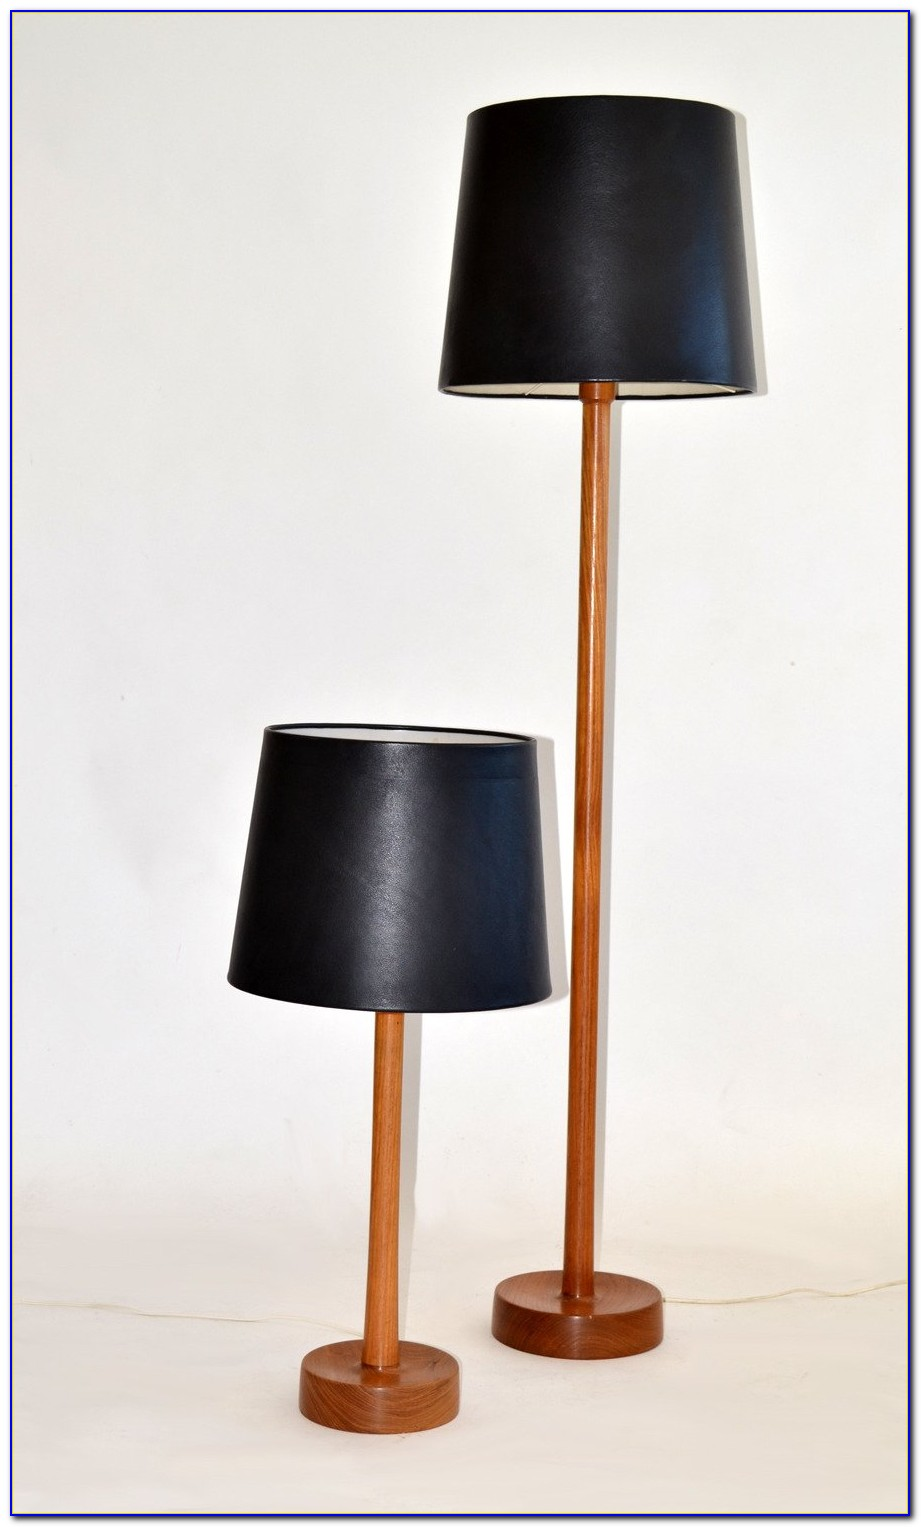 Uno Lamp Shades For Antique Floor Lamps